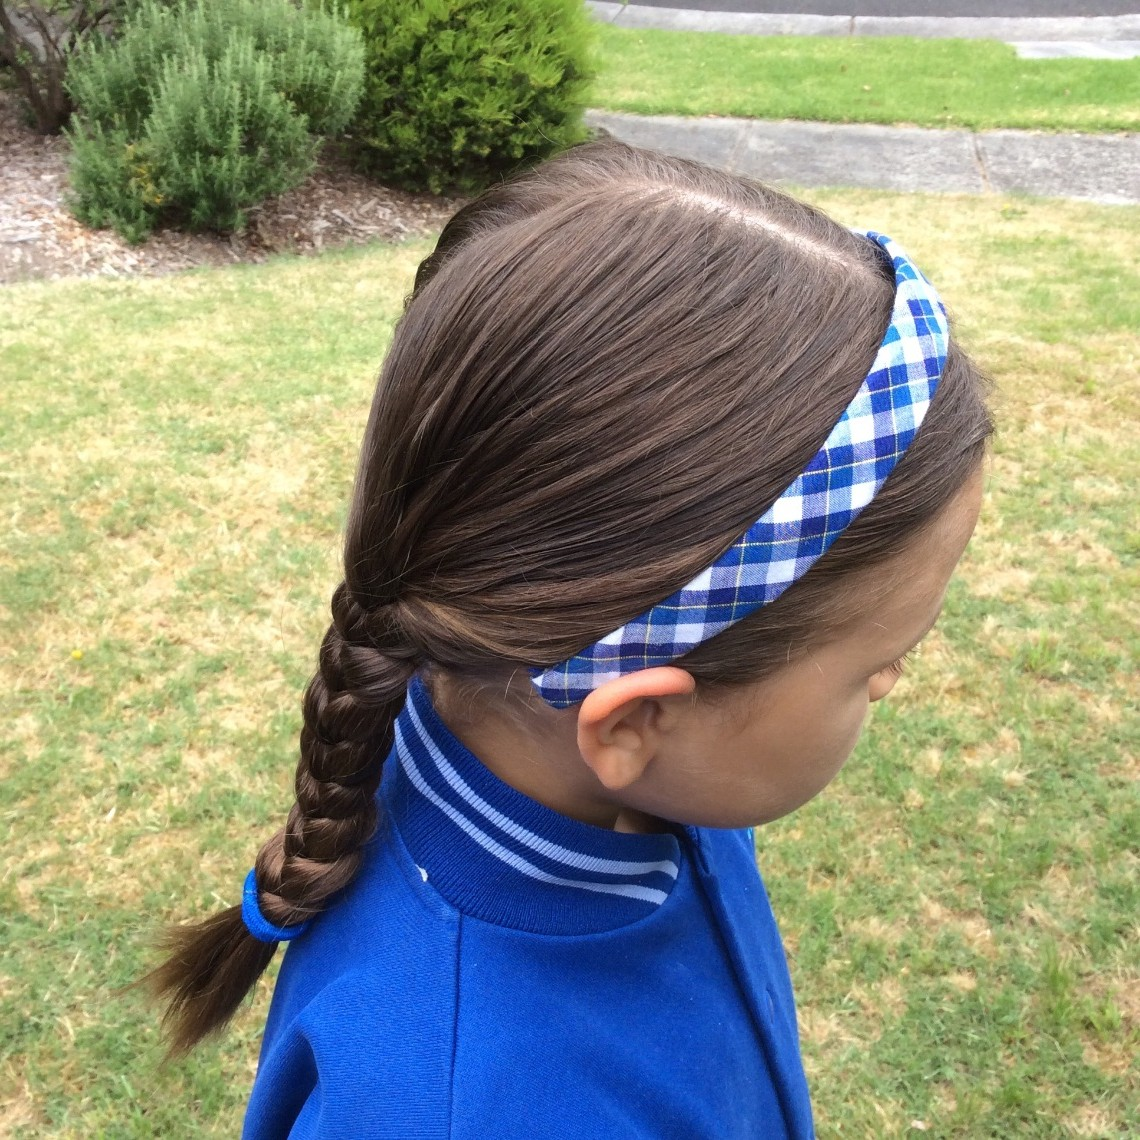 hair band and plait